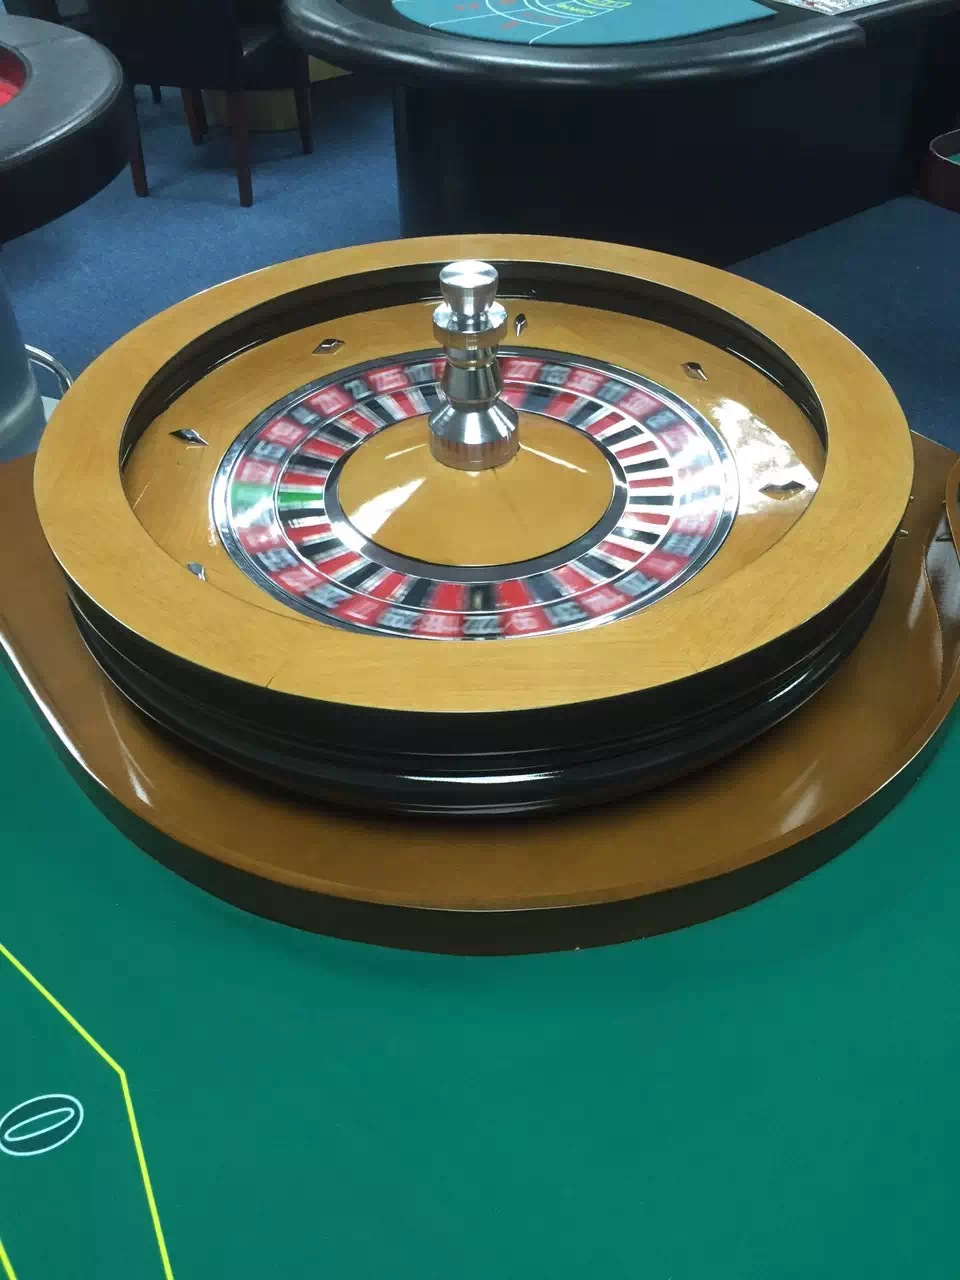 two colors roulette wheel of solid